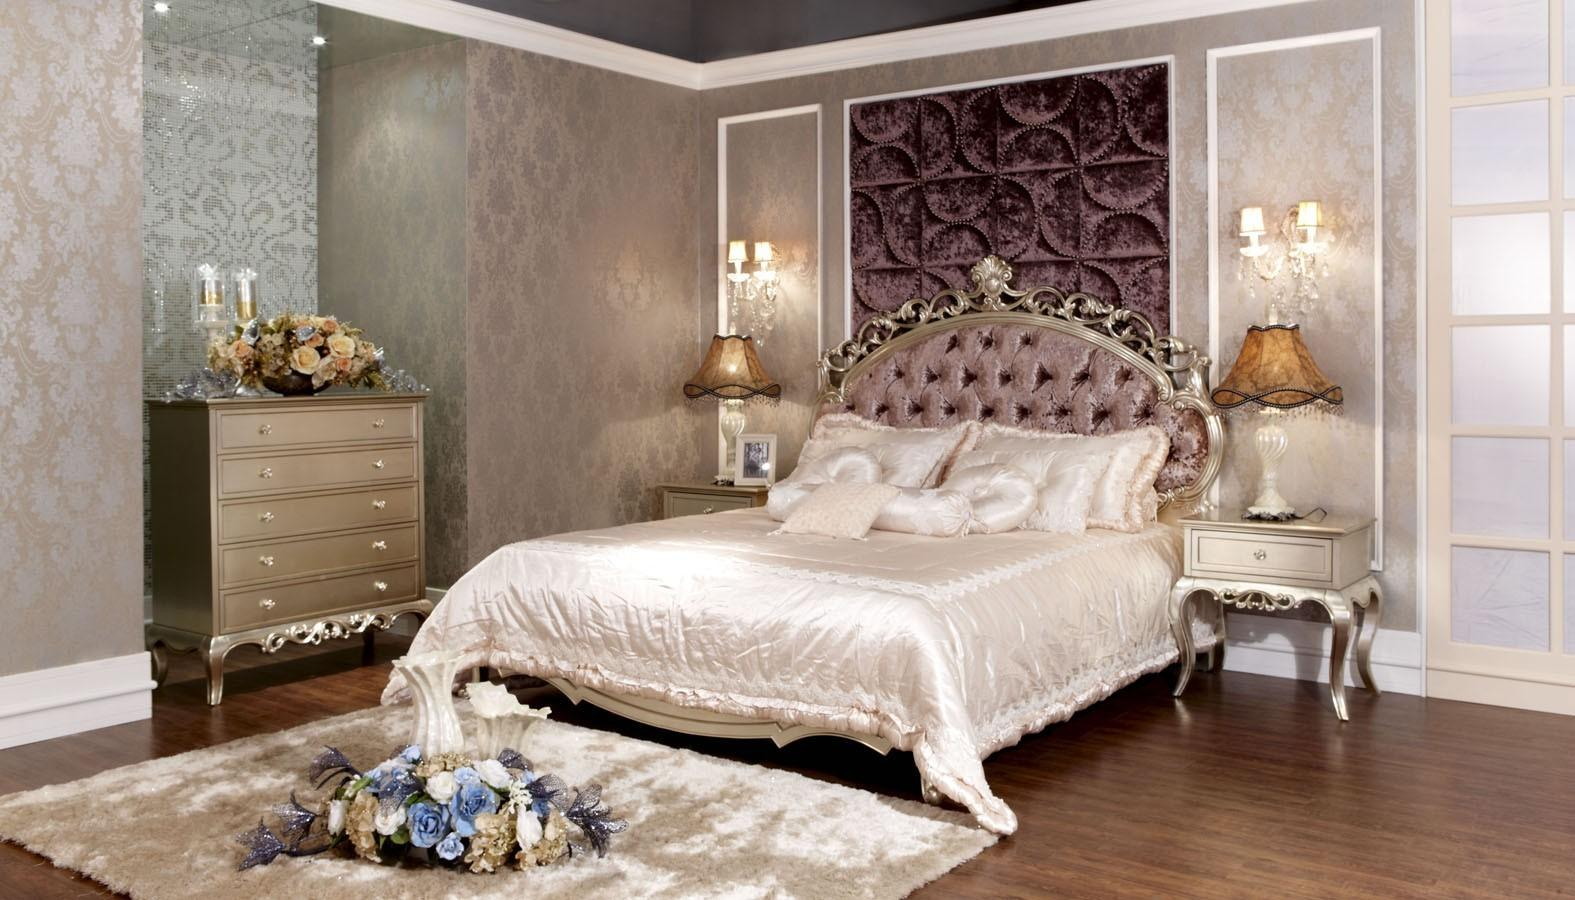 Most Wanted Classic Bedroom Design Orchidlagoon